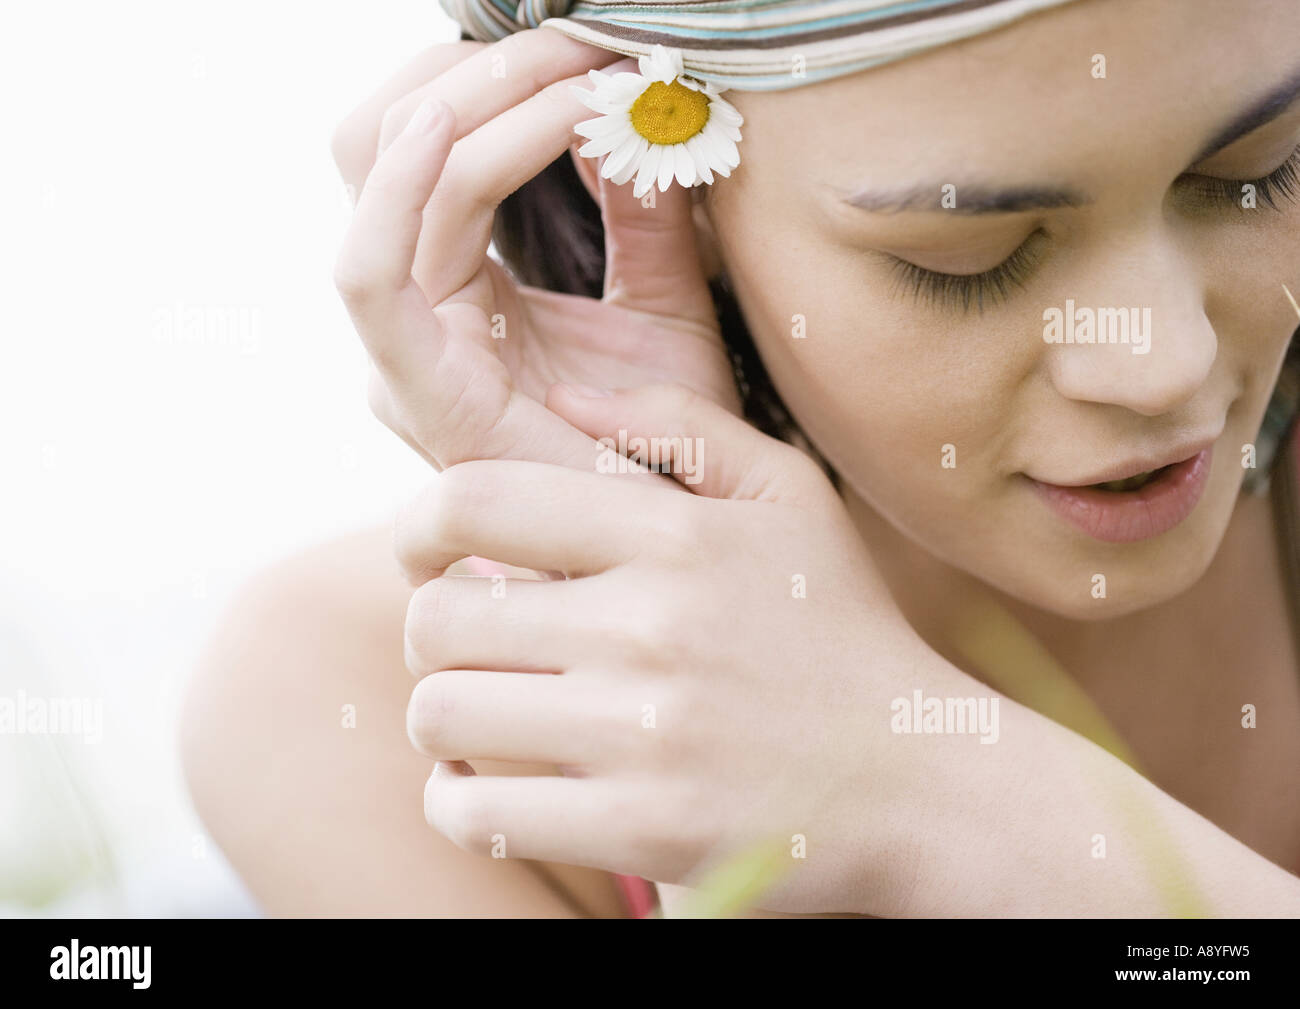 Flower behind ear stock photos flower behind ear stock images alamy young woman putting flower behind ear stock image izmirmasajfo